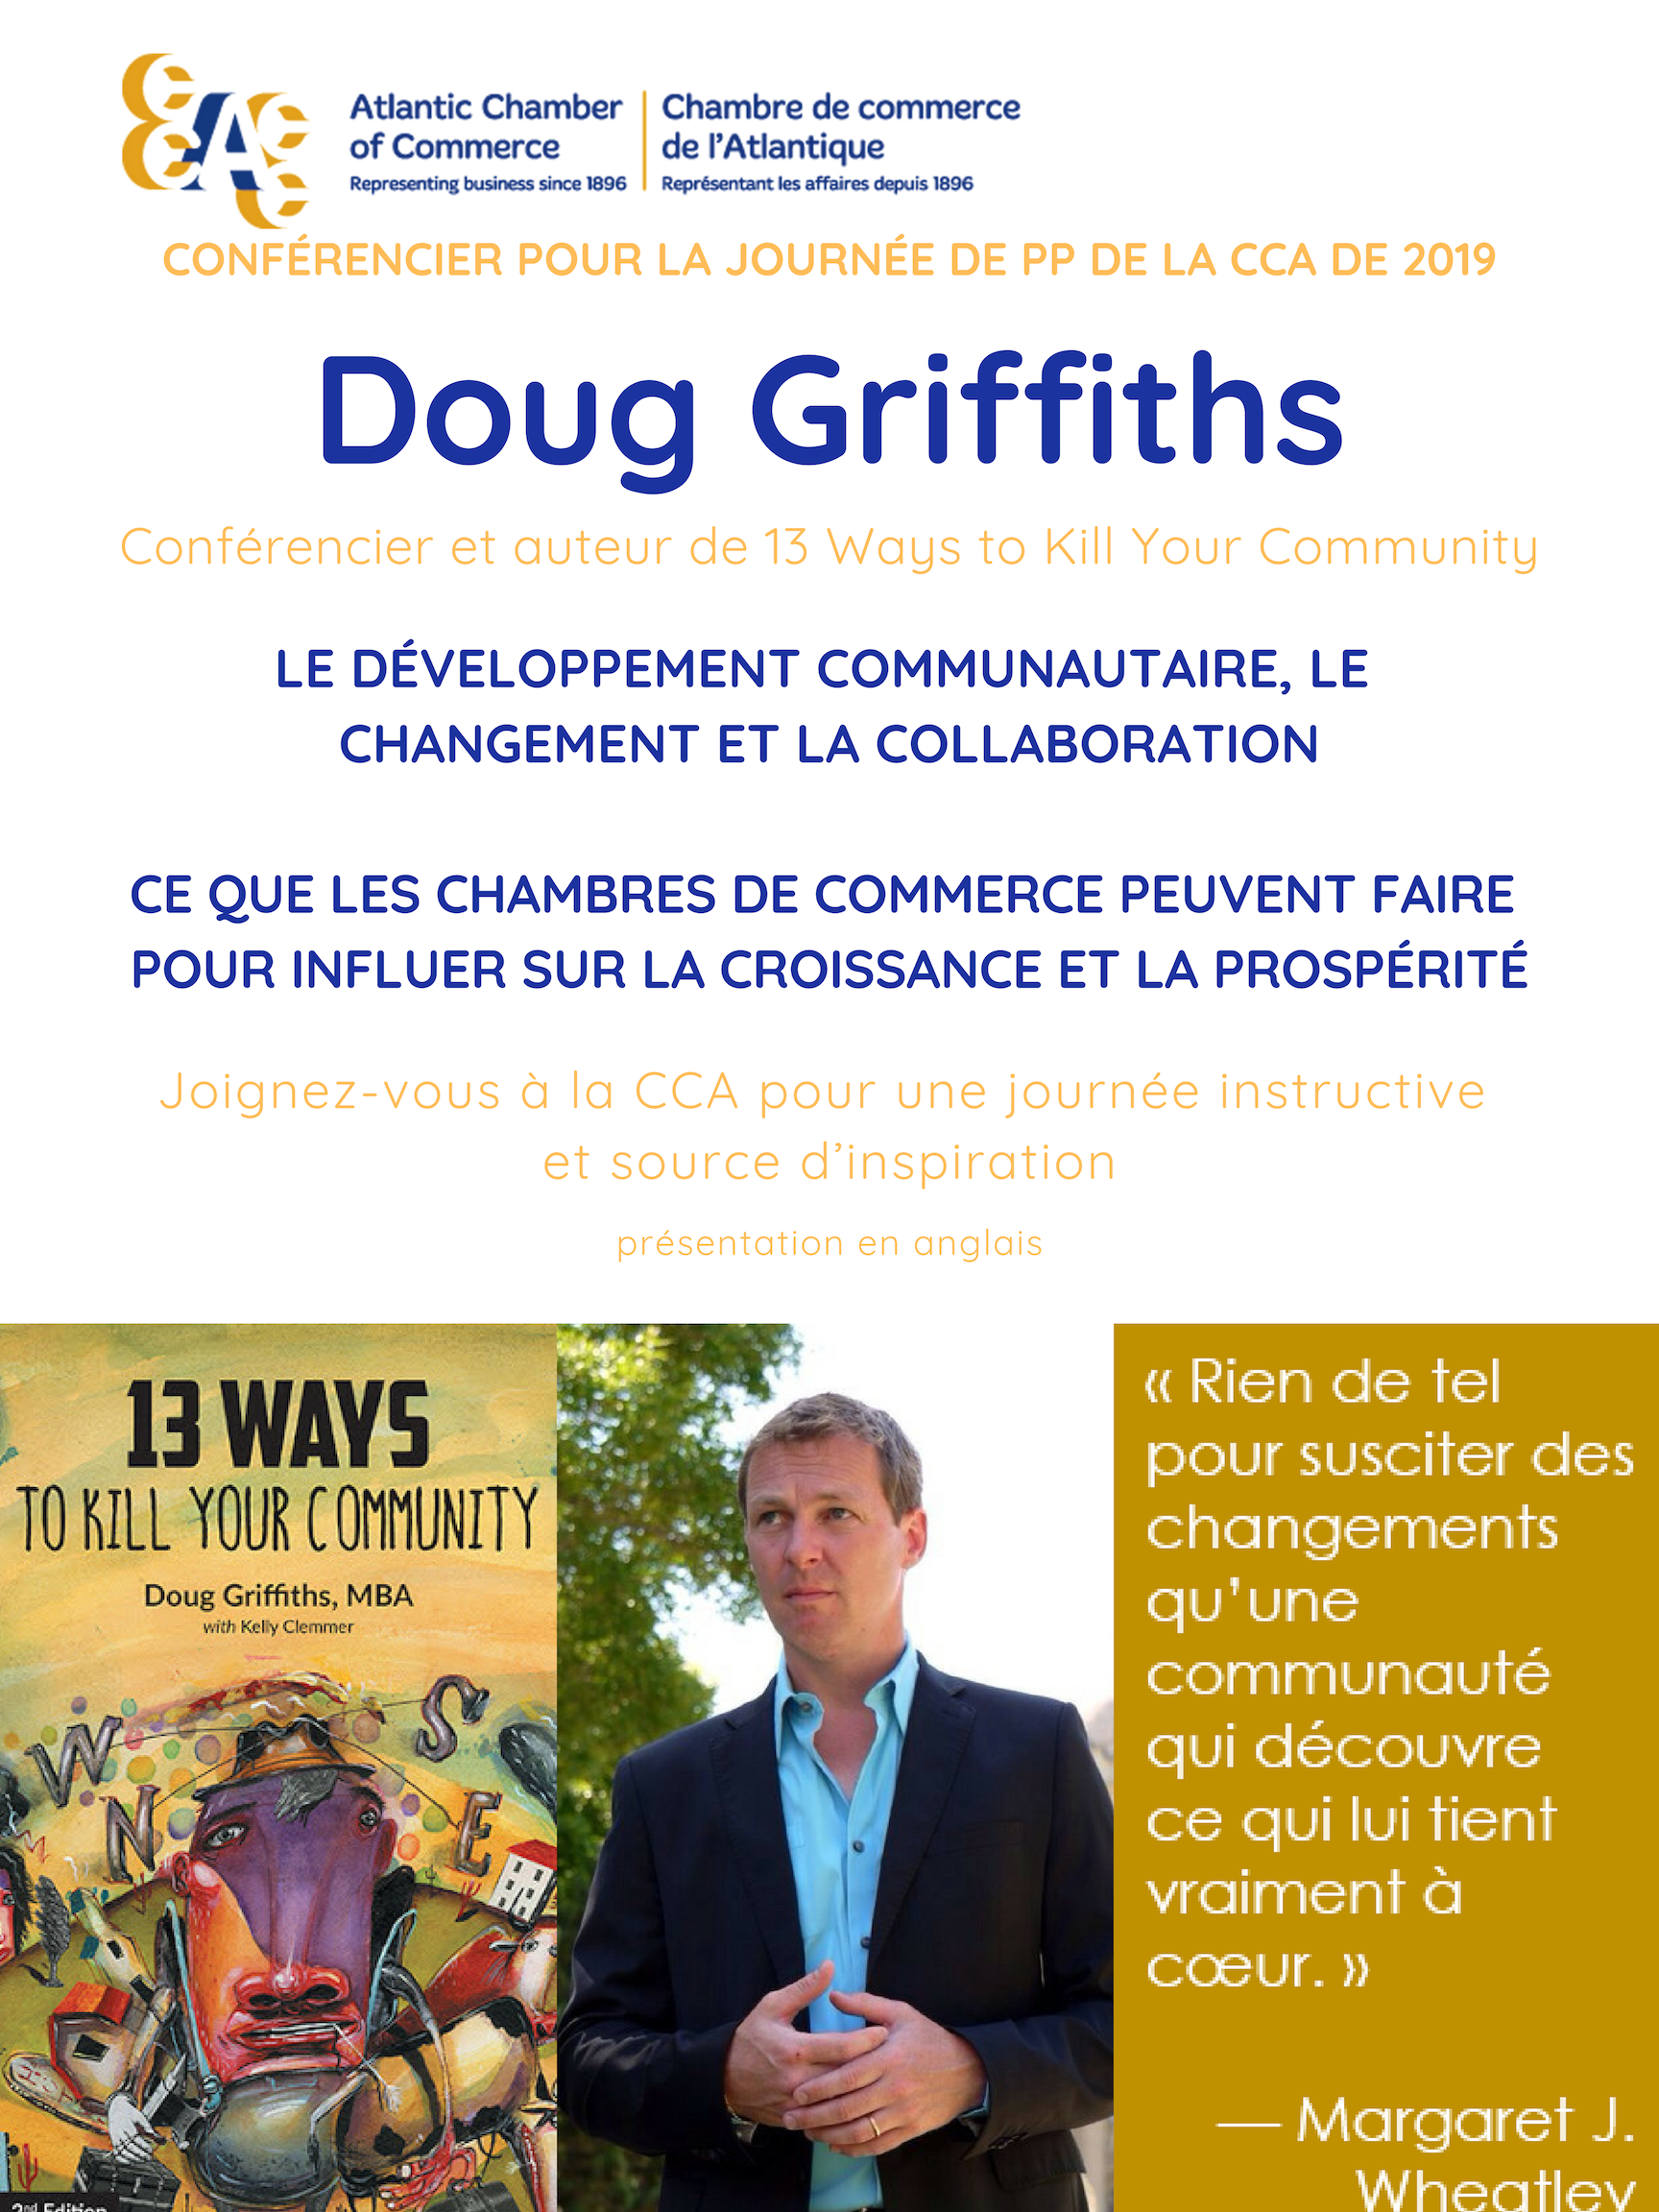 Doug-Griffiths_FR_Mar2019.jpg